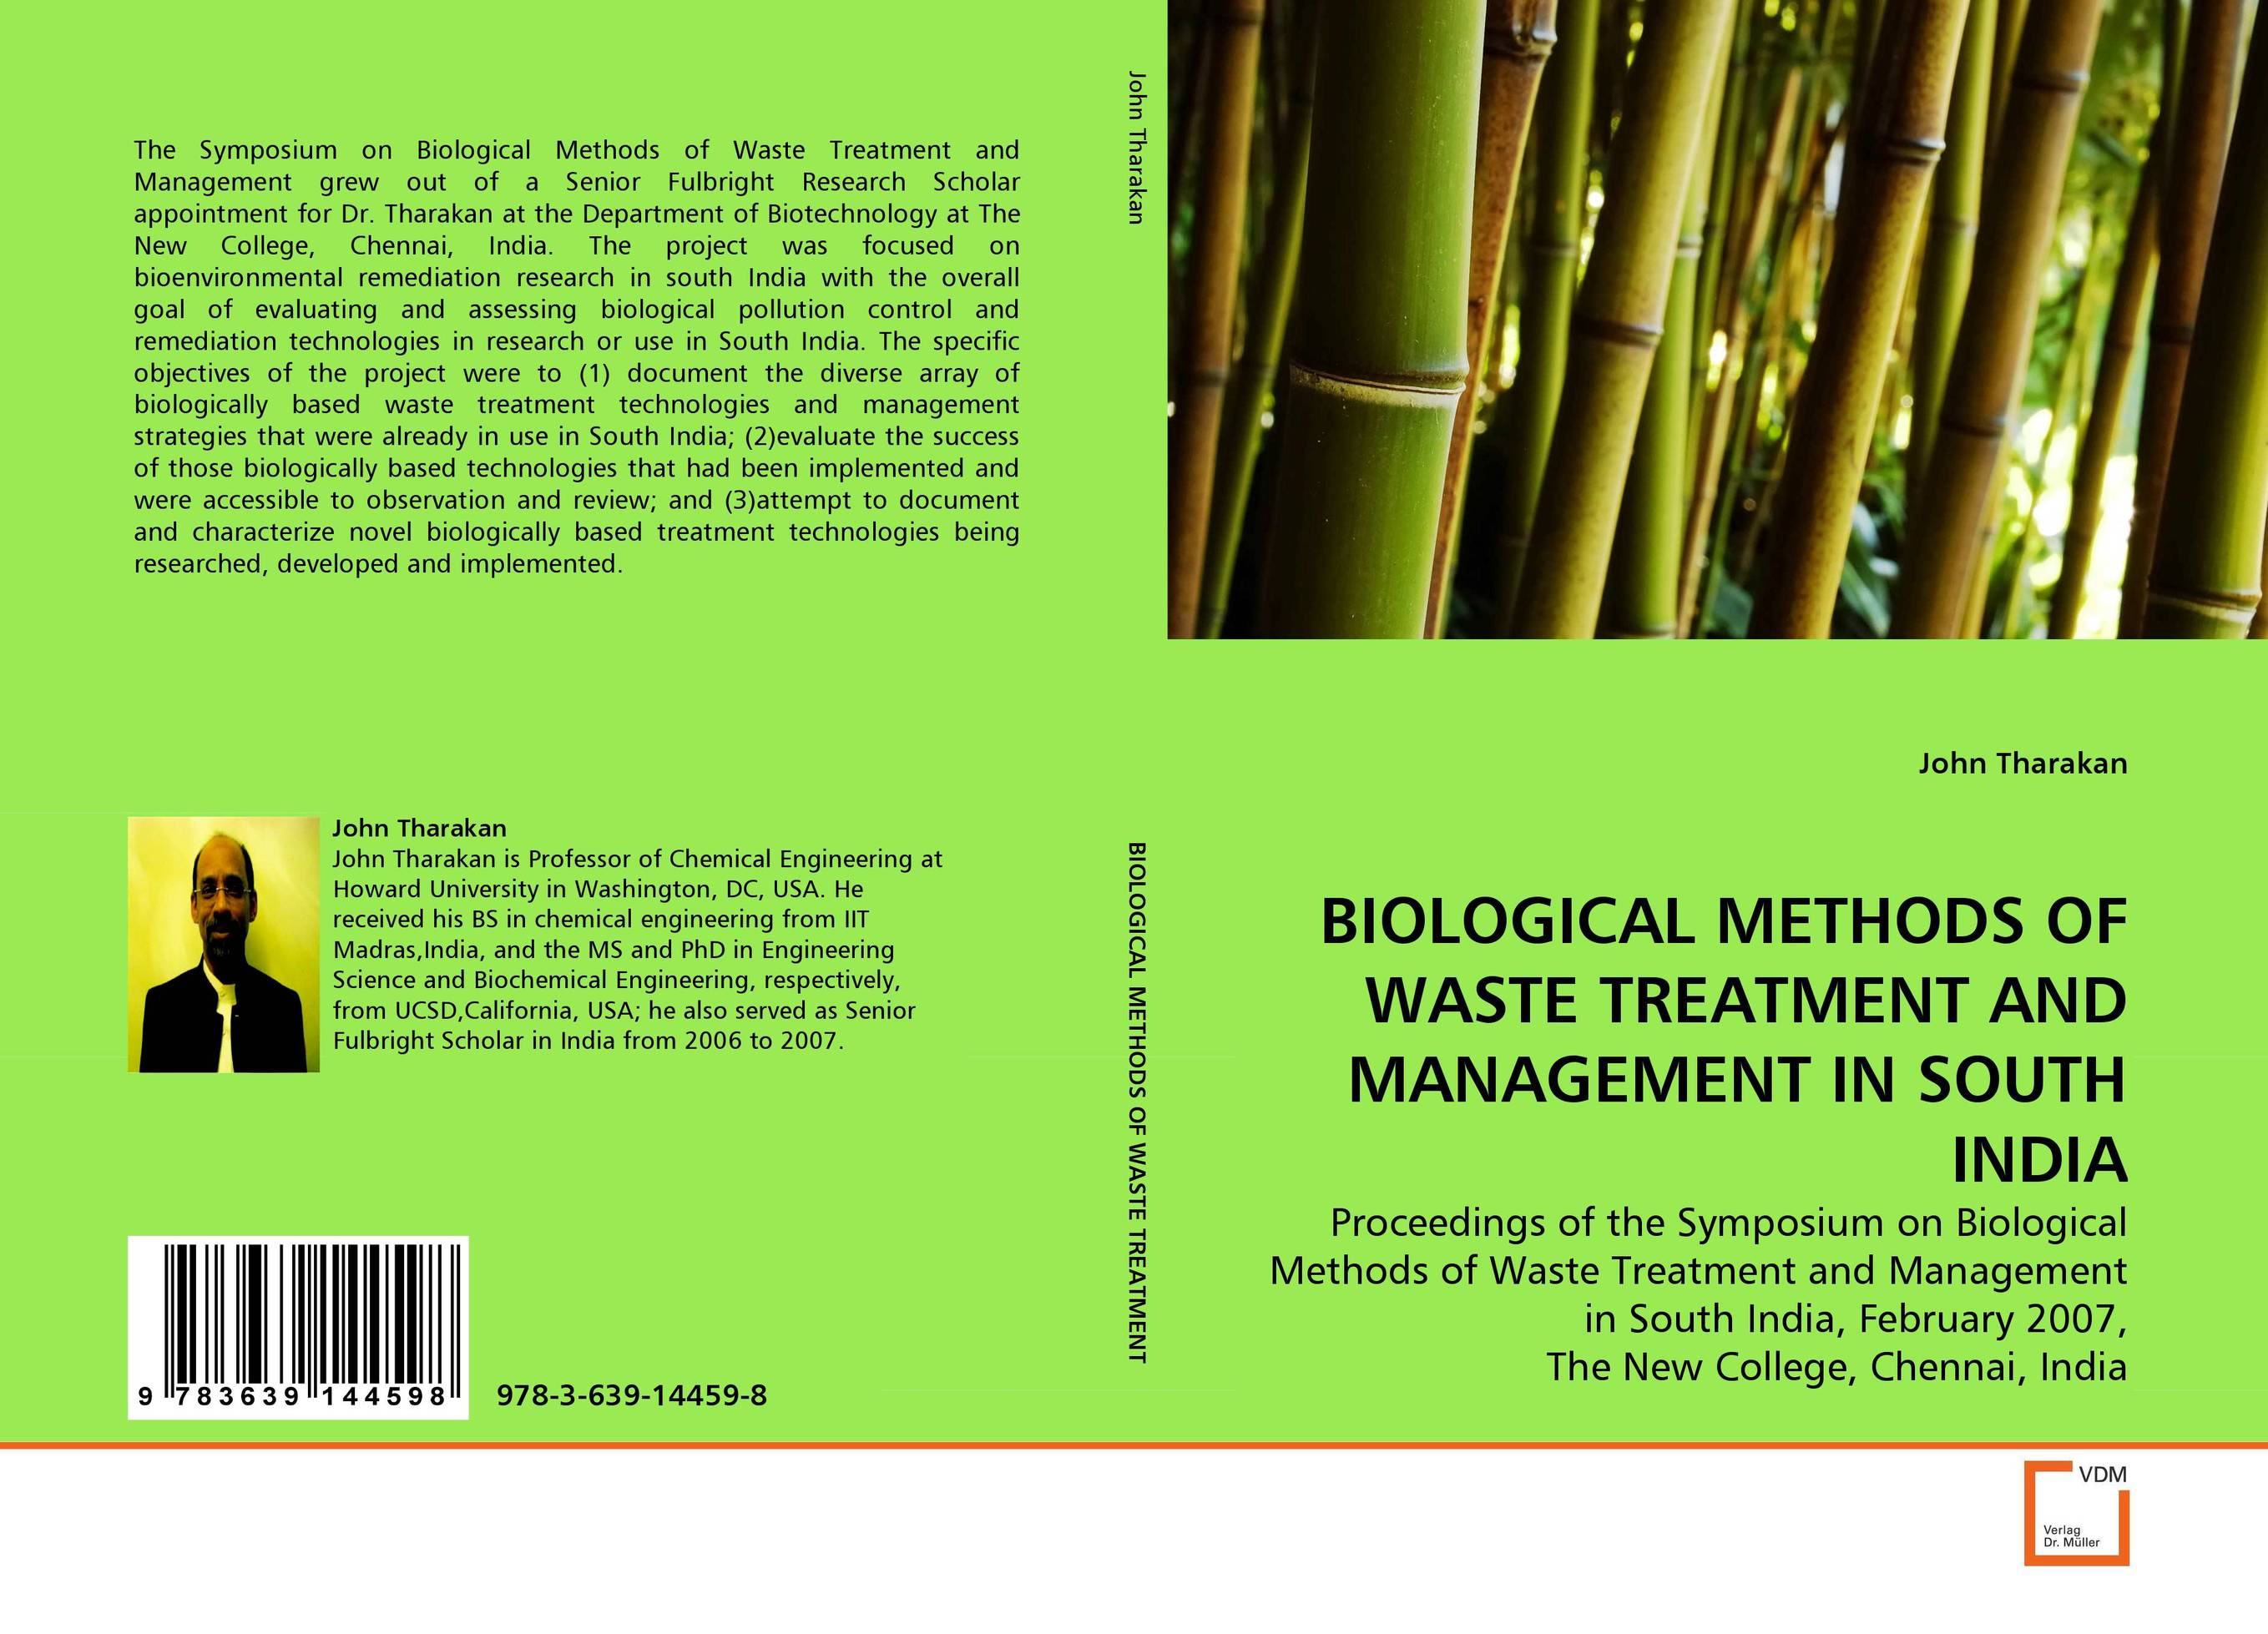 BIOLOGICAL METHODS OF WASTE TREATMENT AND MANAGEMENT IN SOUTH INDIA nicholas p cheremisinoff groundwater remediation and treatment technologies